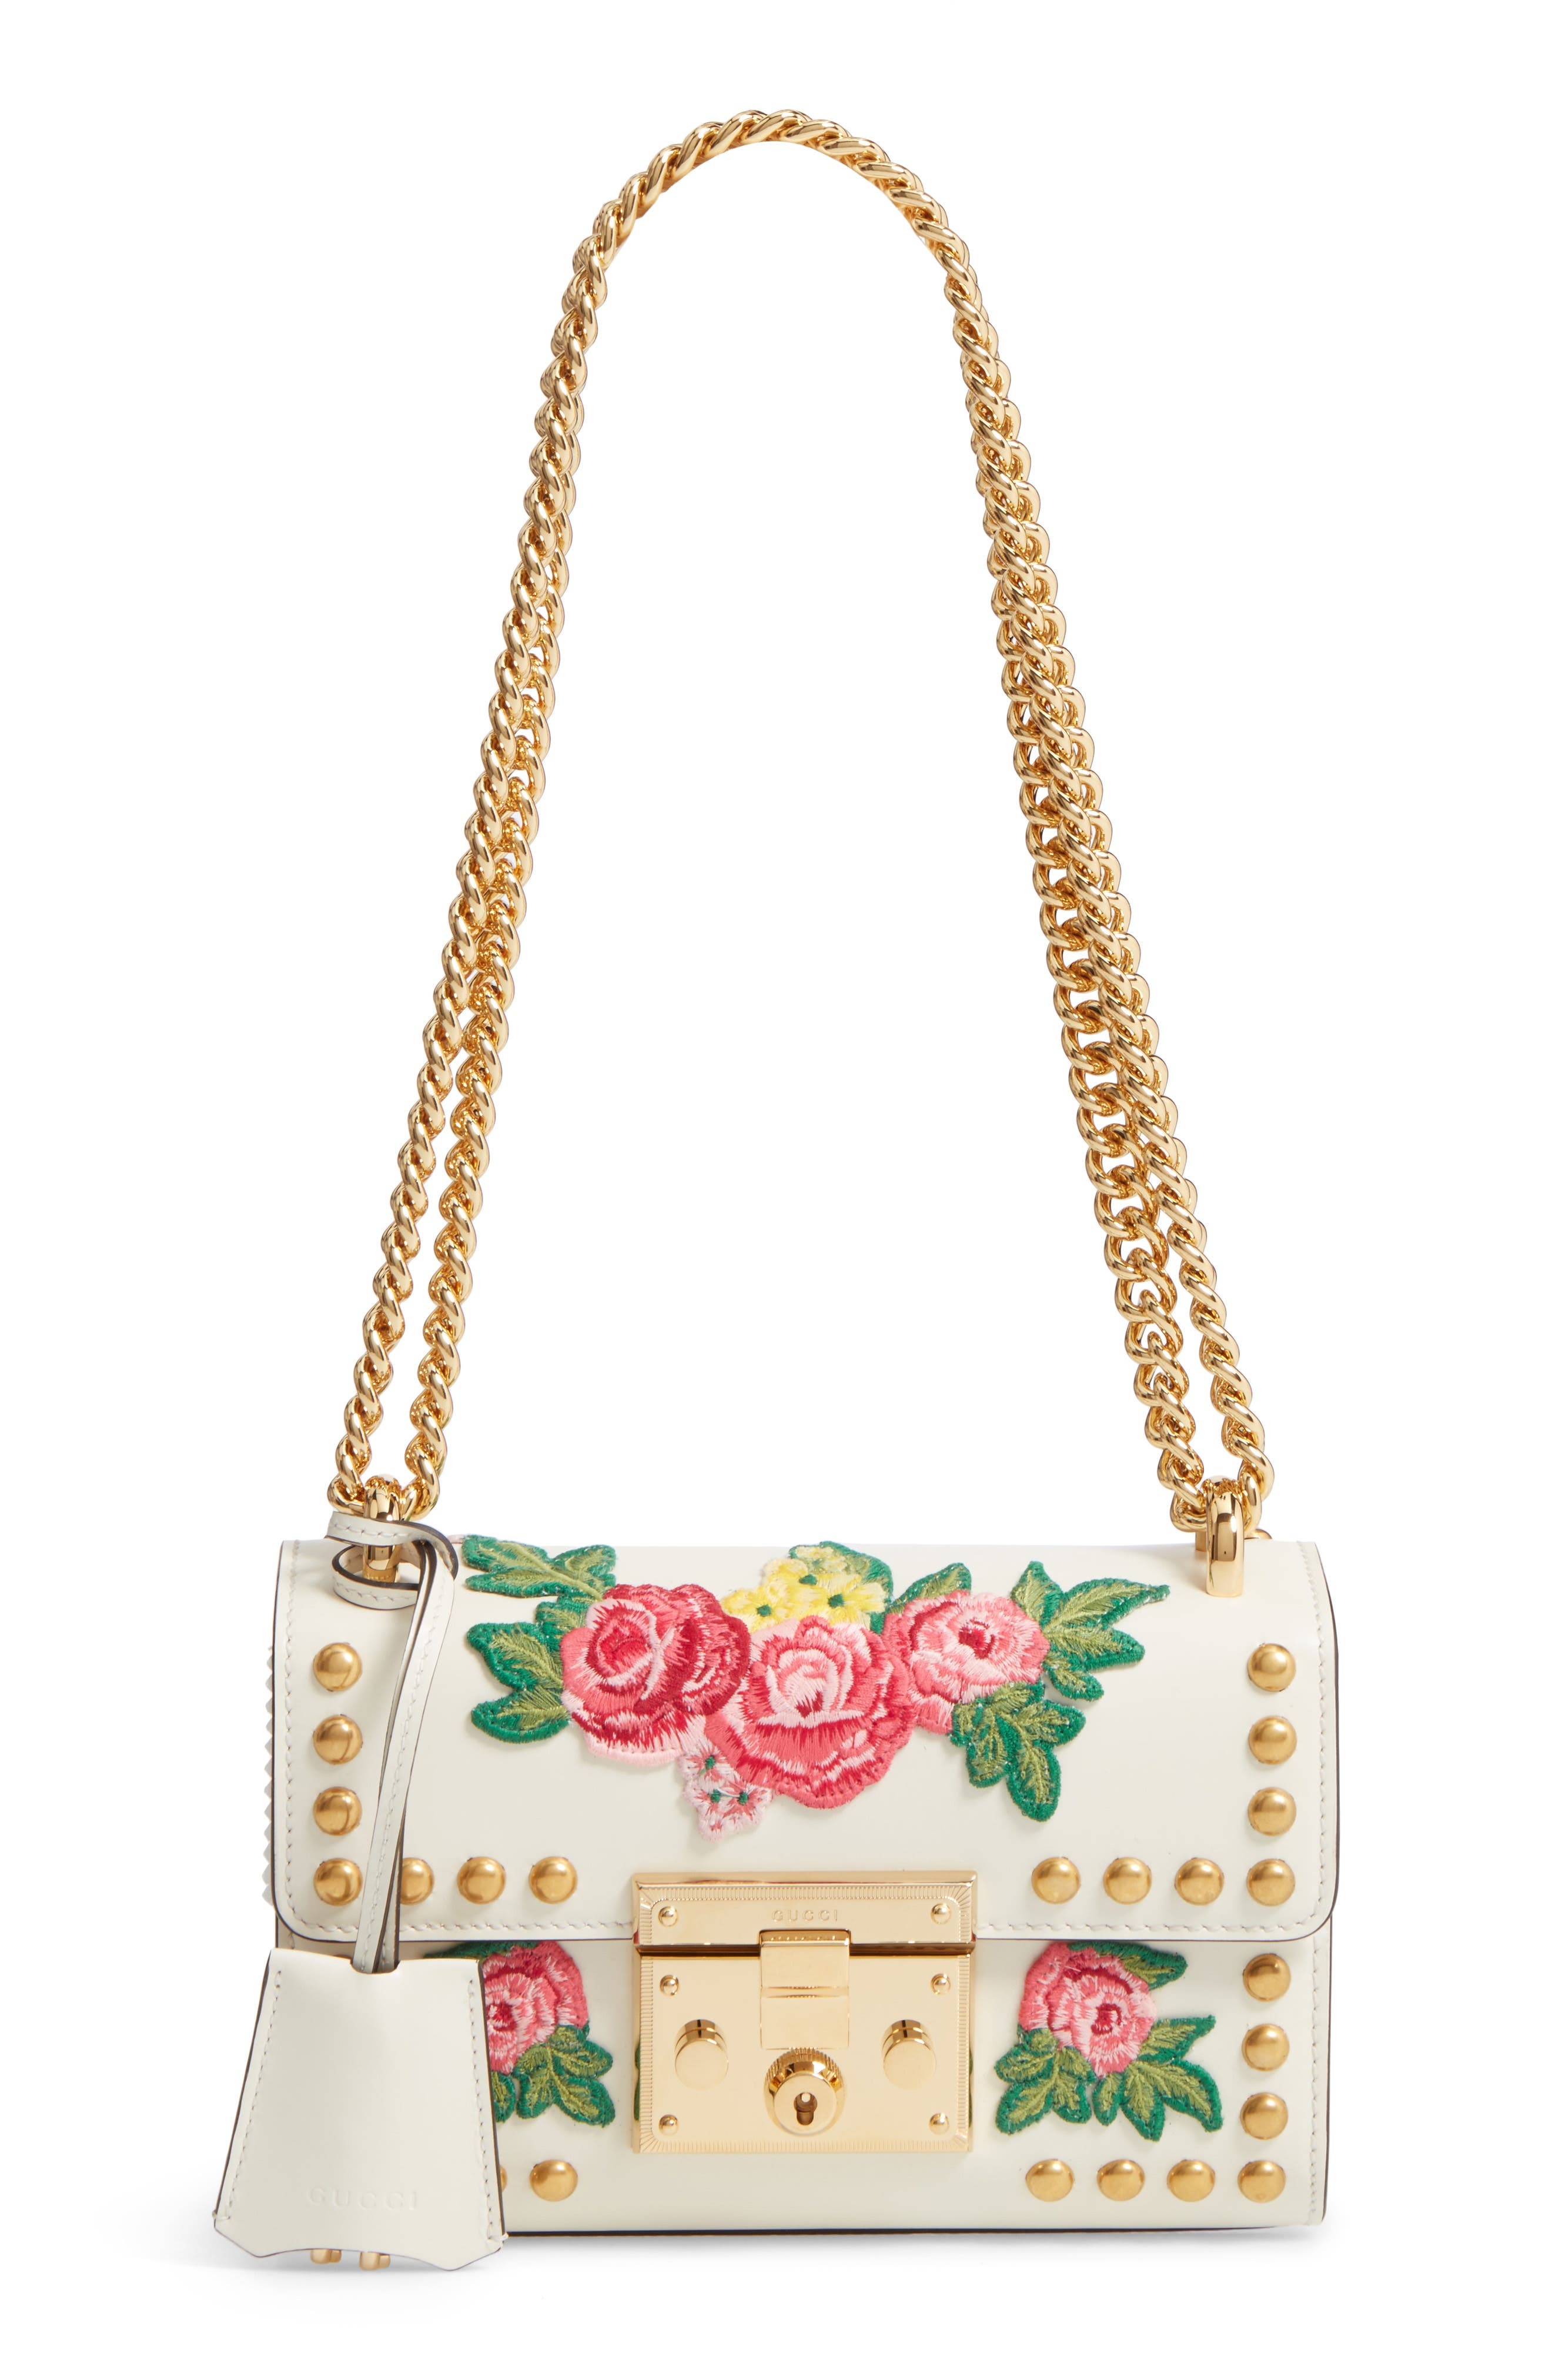 GUCCI, Small Padlock Embroidered Leather Shoulder Bag, Main thumbnail 1, color, 101